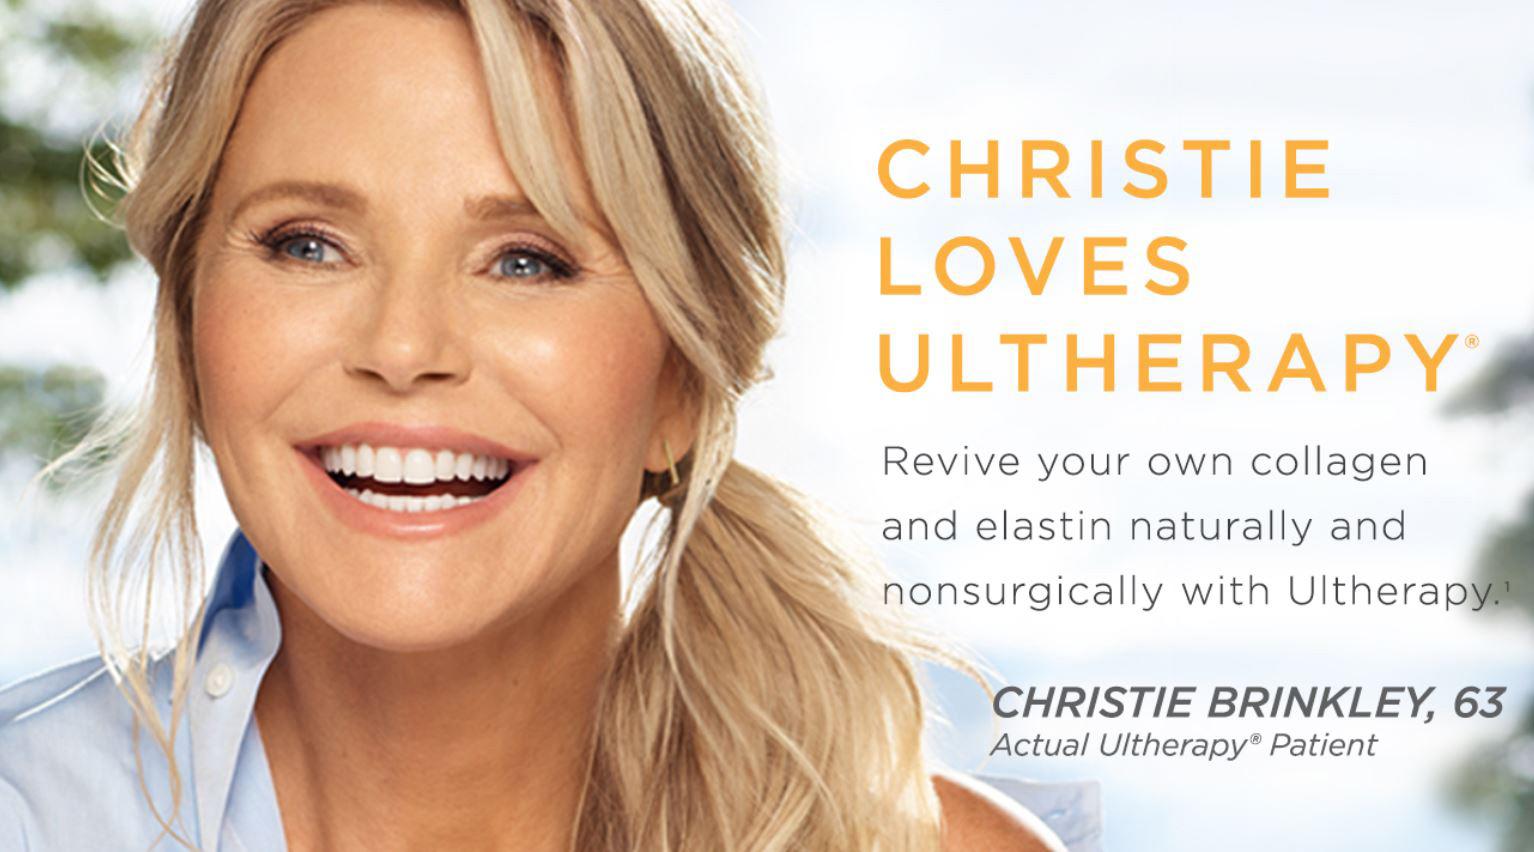 coastal-valley-dermatology-ultherapy-brinkley-christie-photo